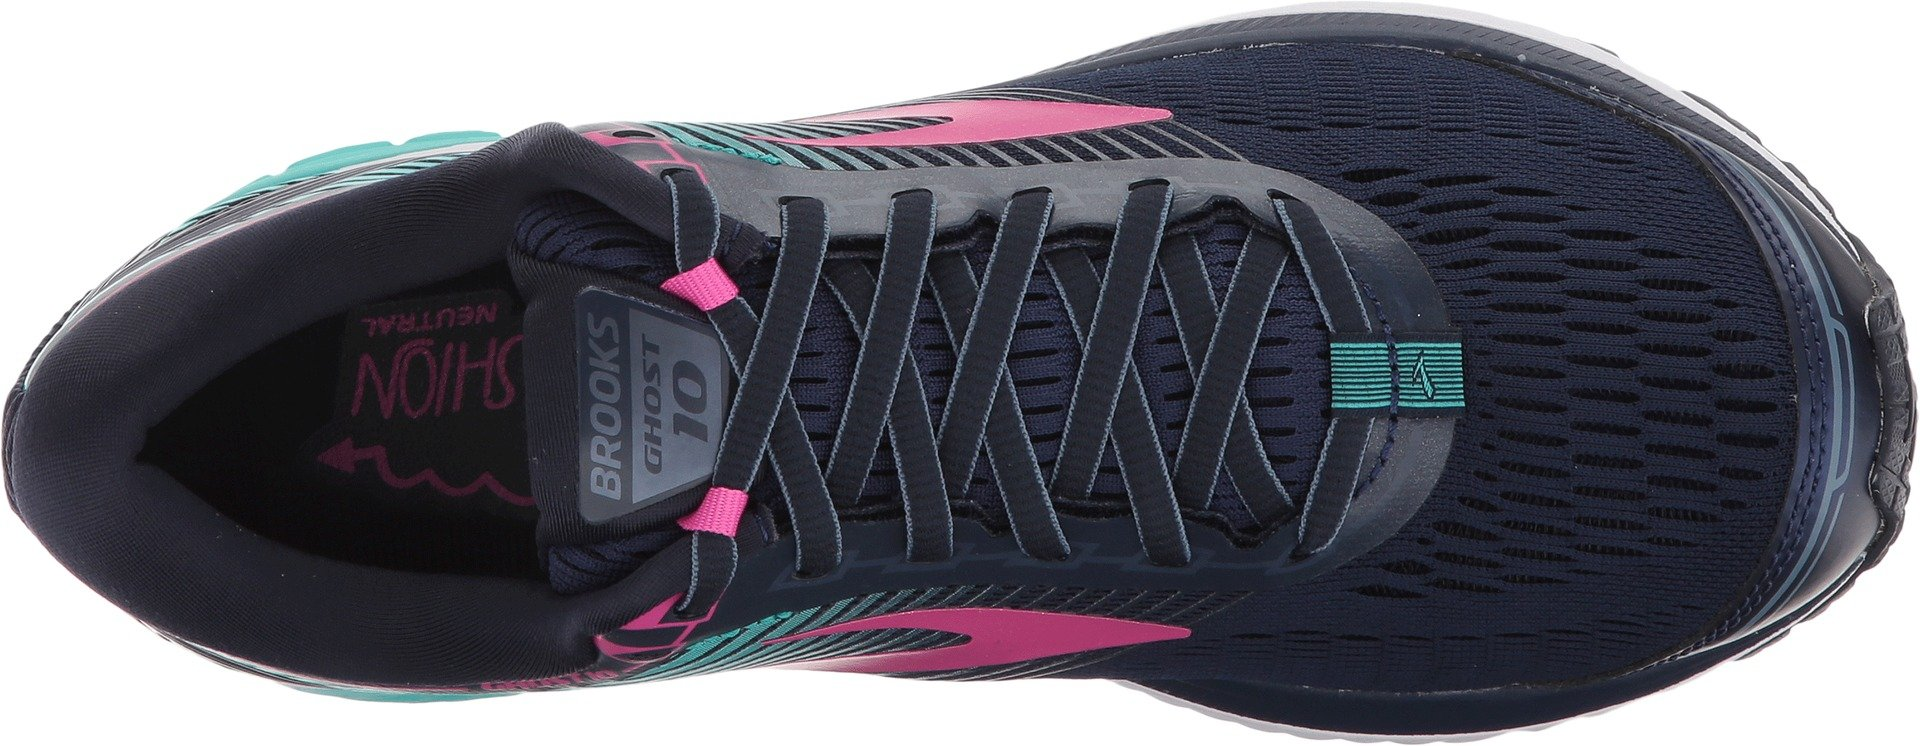 Brooks Women's Ghost 10 Navy/Pink/Teal Green 9.5 B US by Brooks (Image #2)